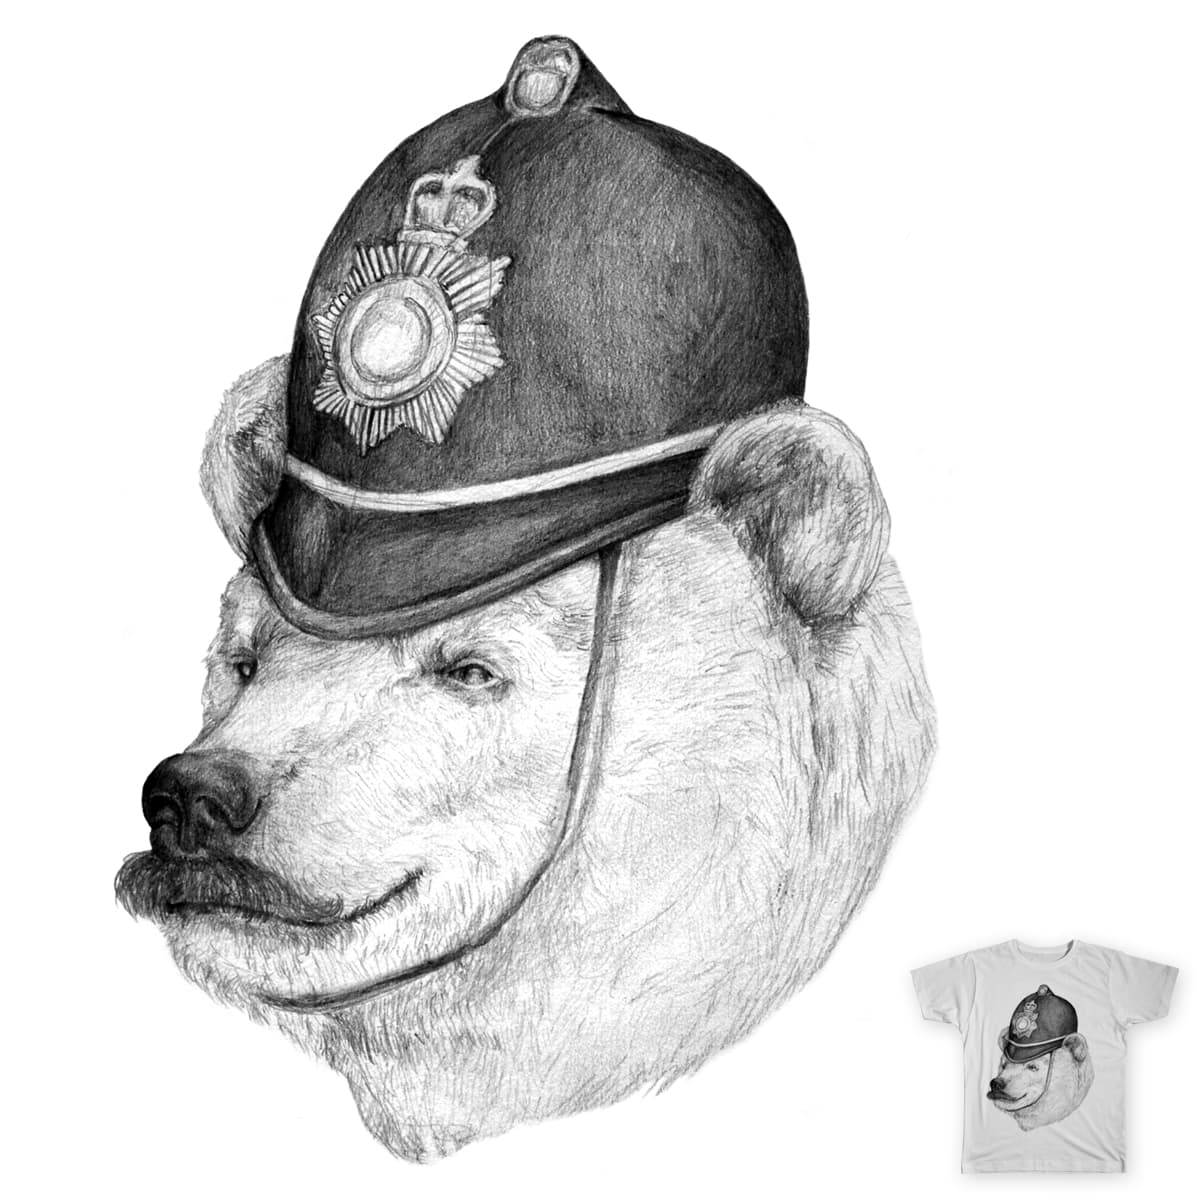 Bearly Legal by murraymullet on Threadless